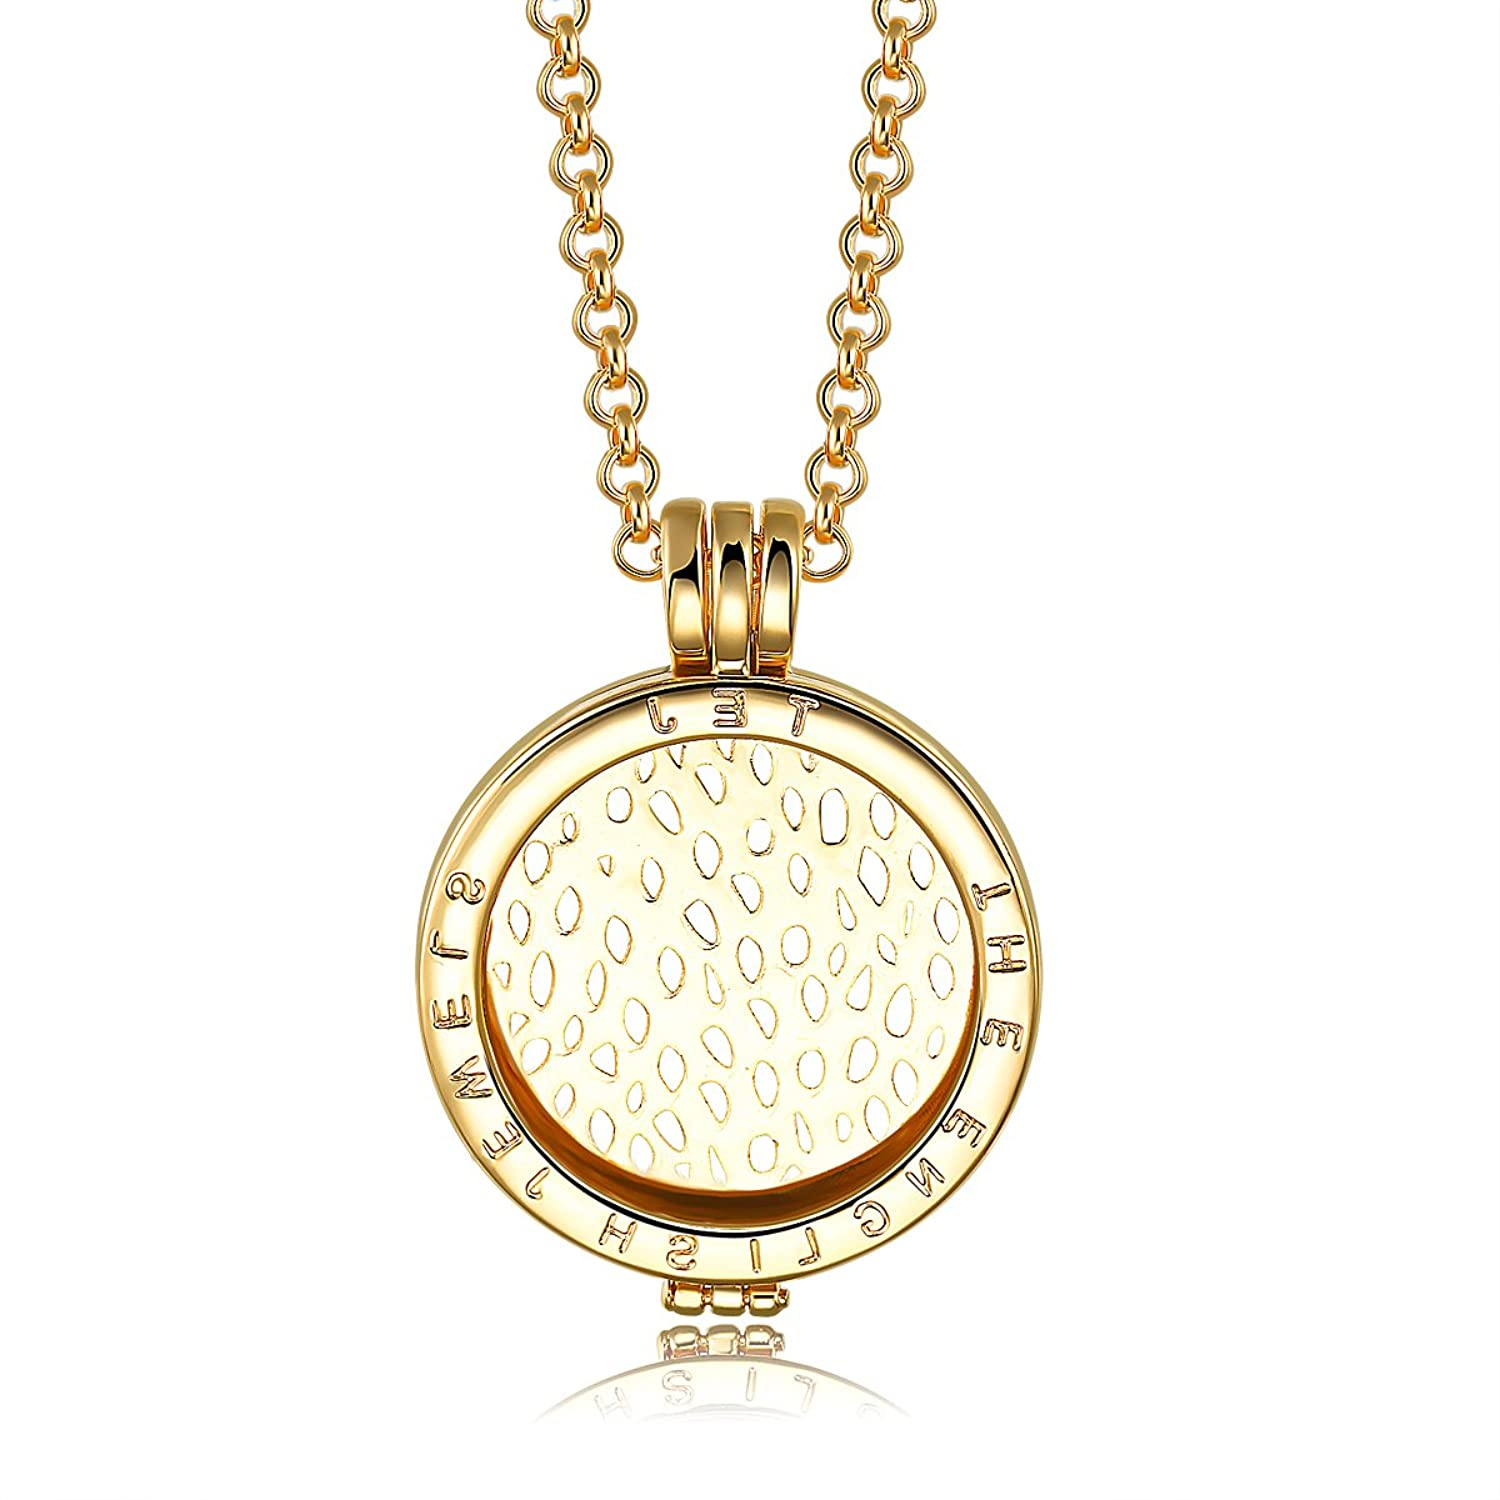 Interchangeable coin pendant necklace gold plated including interchangeable coin pendant necklace gold plated including belcher chain 25 30 inch white amazon jewellery mozeypictures Images